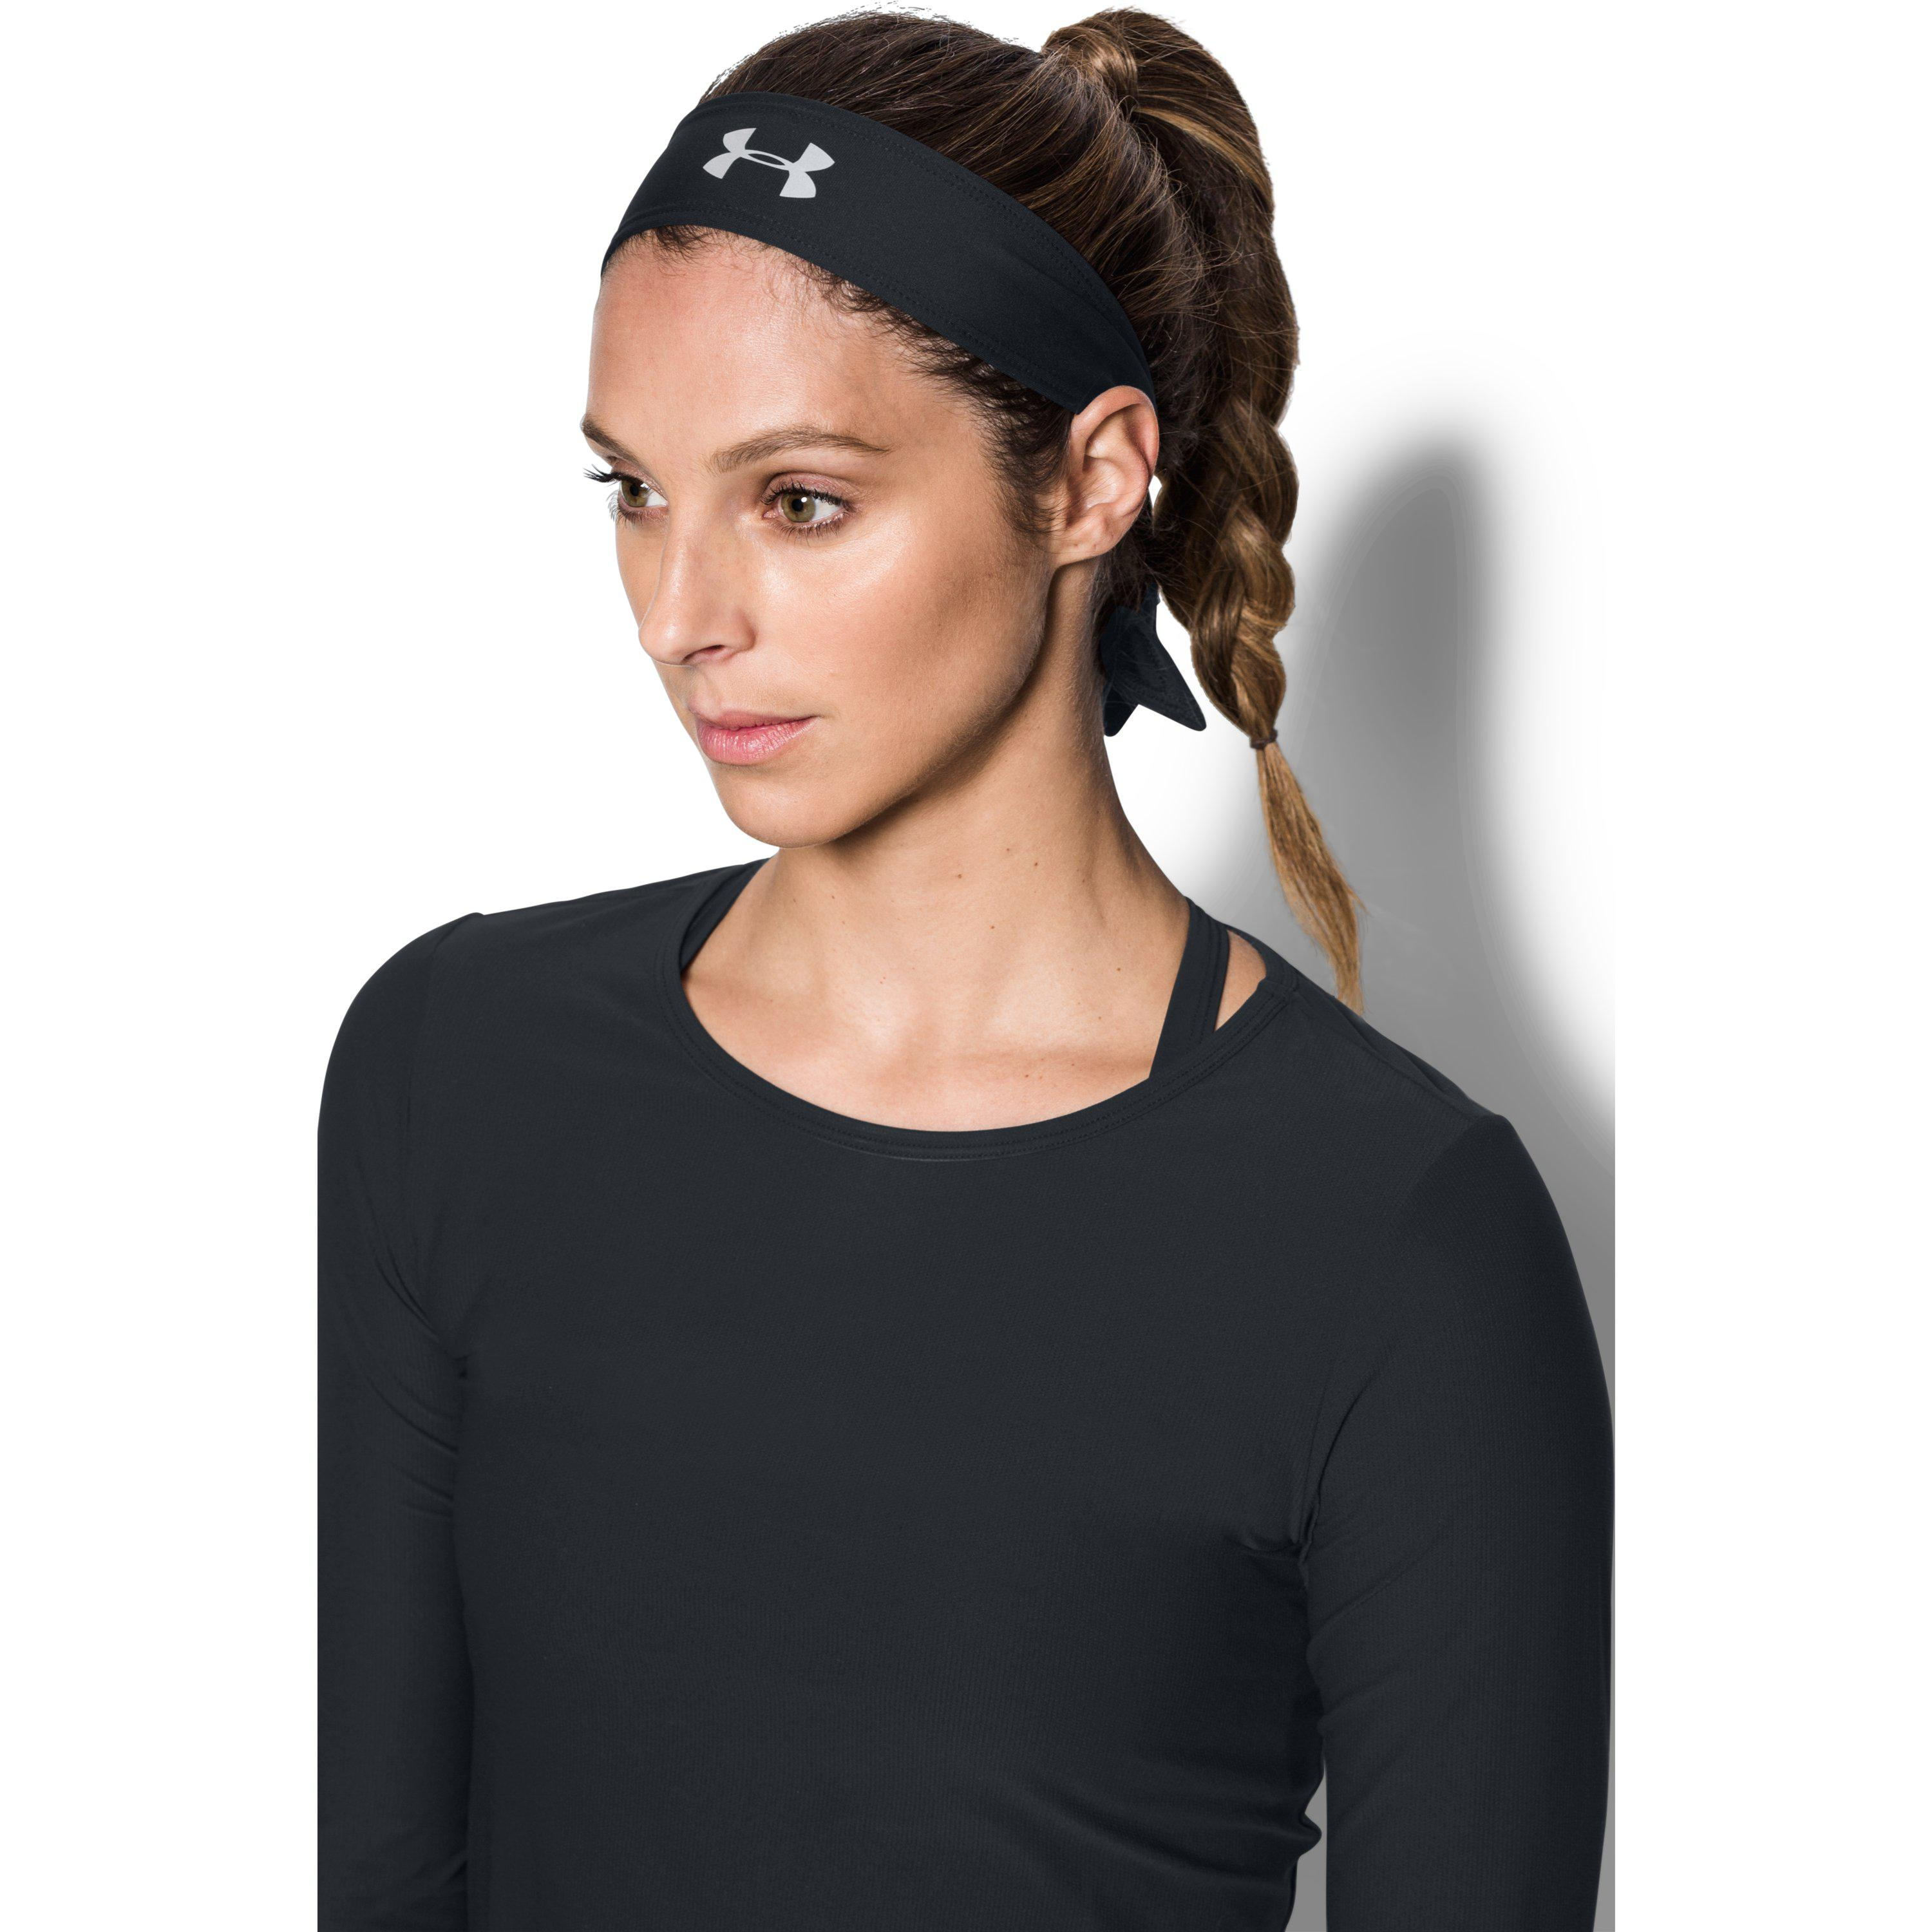 Lyst - Under Armour Women s Ua Armour Tie Headband in Black f765a6bde62